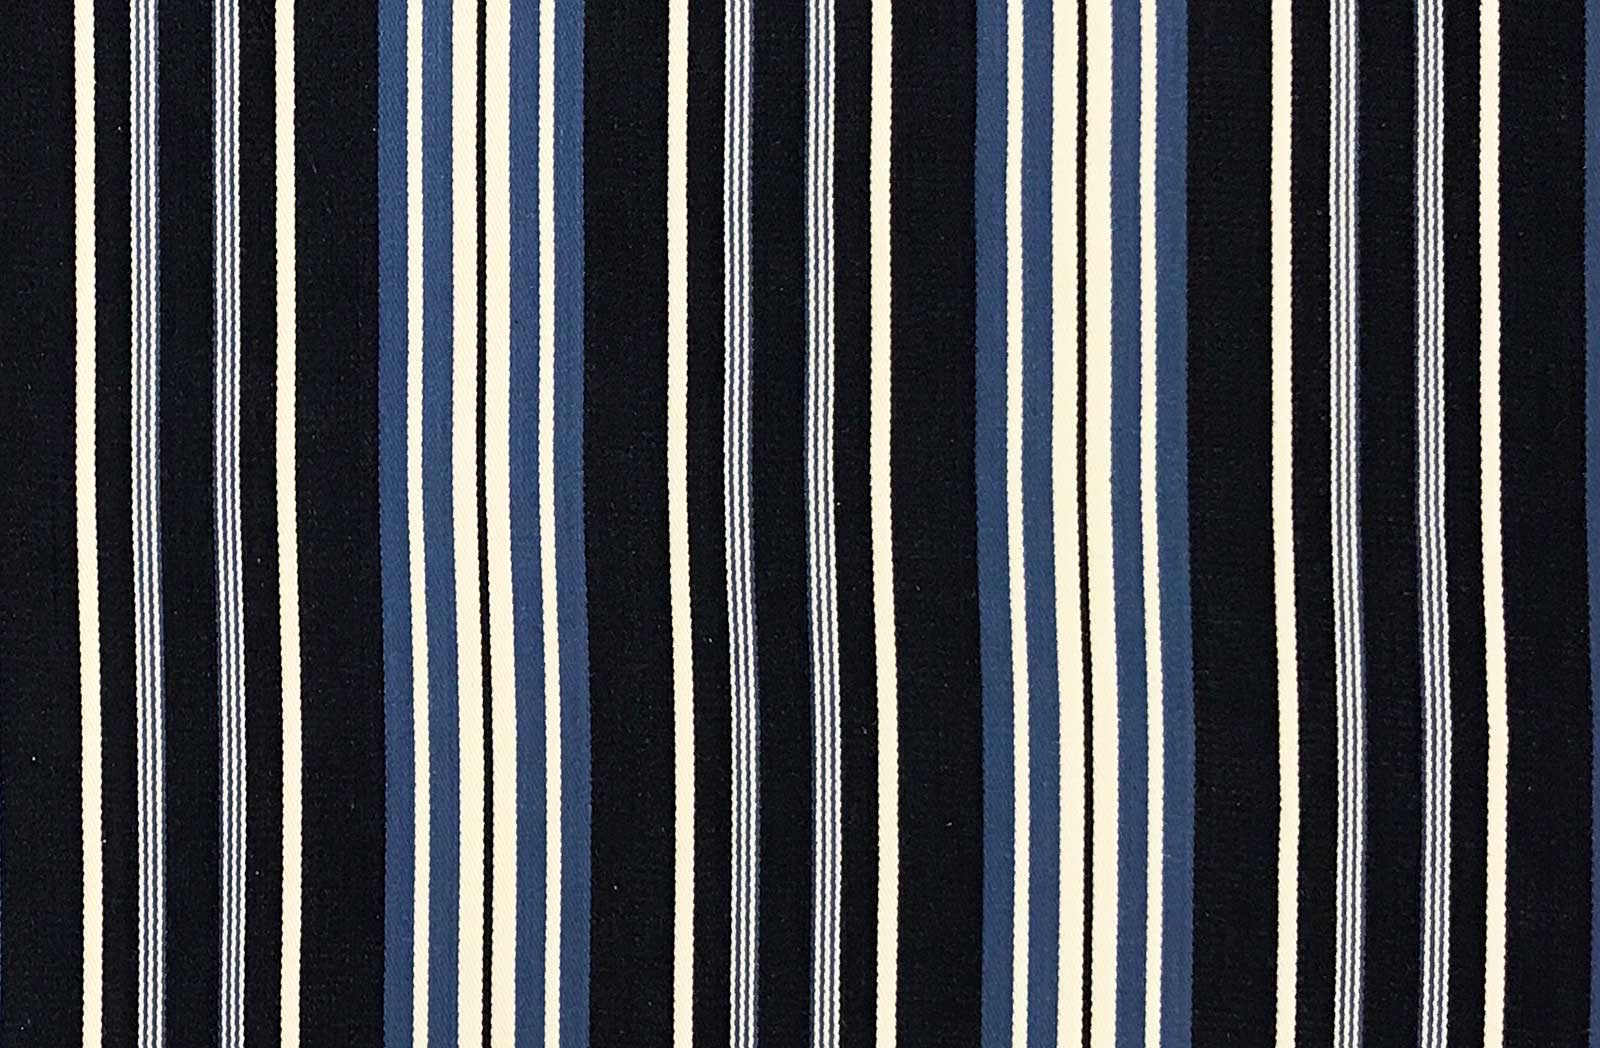 Dark Blue and White Stripe Ticking Fabric